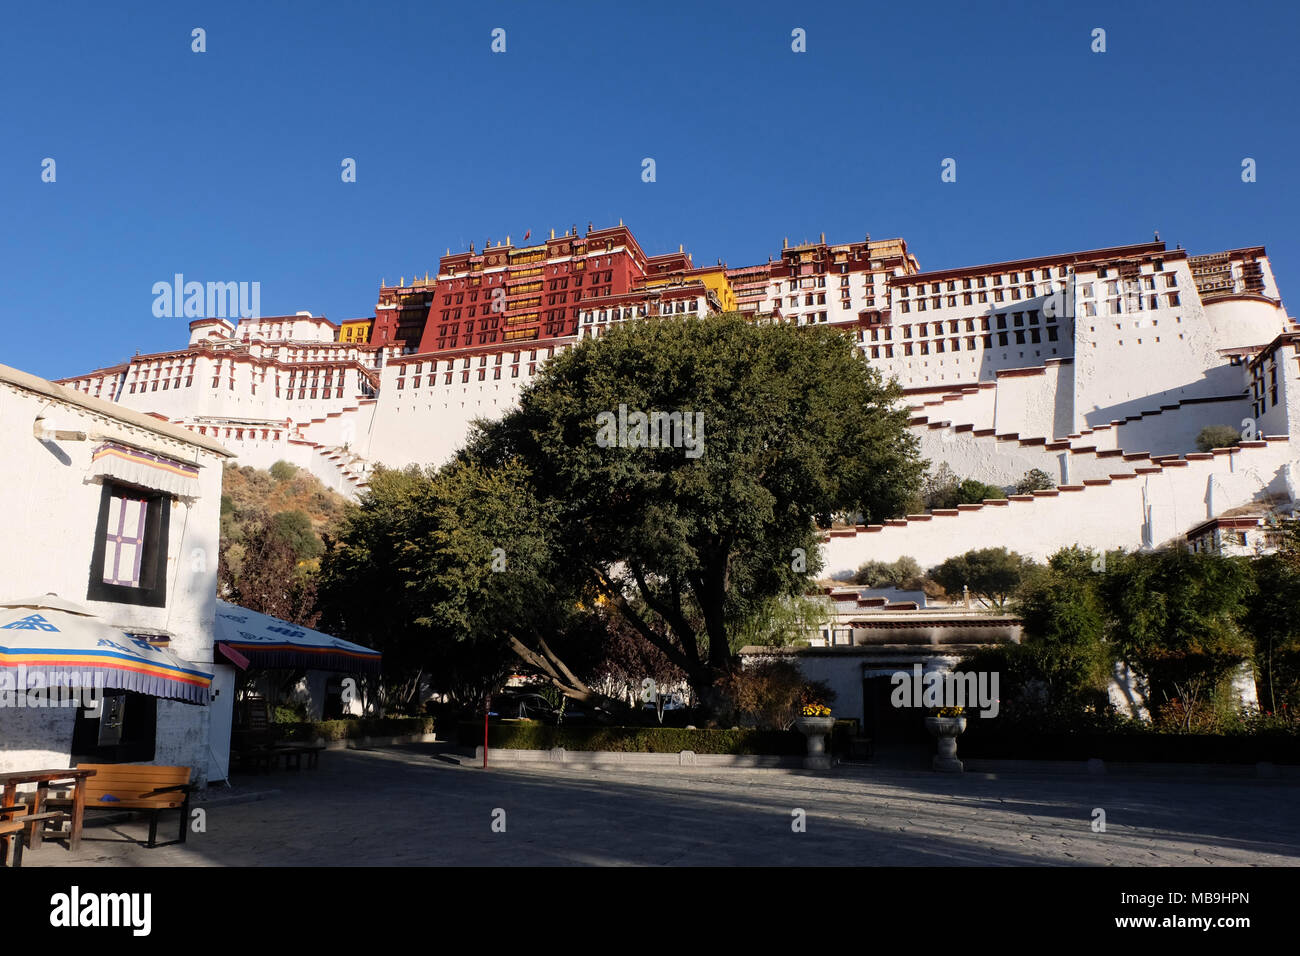 Potala Palace, Tibet, China - Stock Image